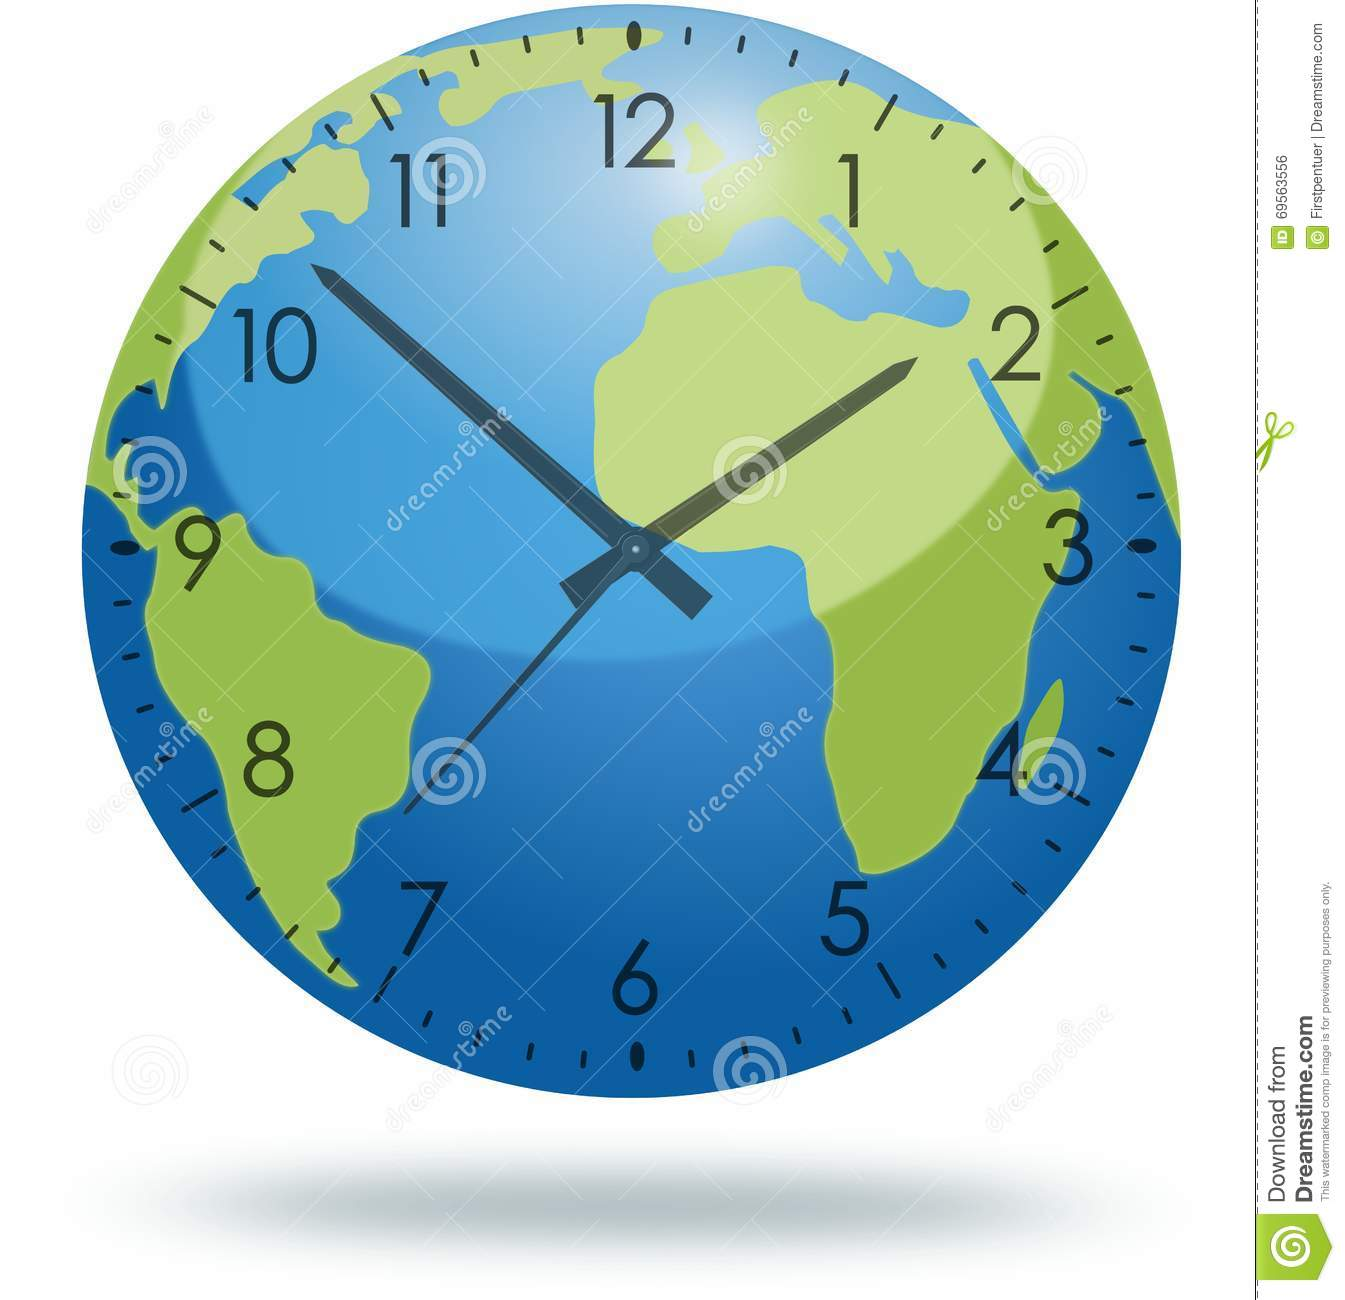 Planet earth with clock face isolated on white stock illustration planet earth with clock face isolated on white gumiabroncs Images